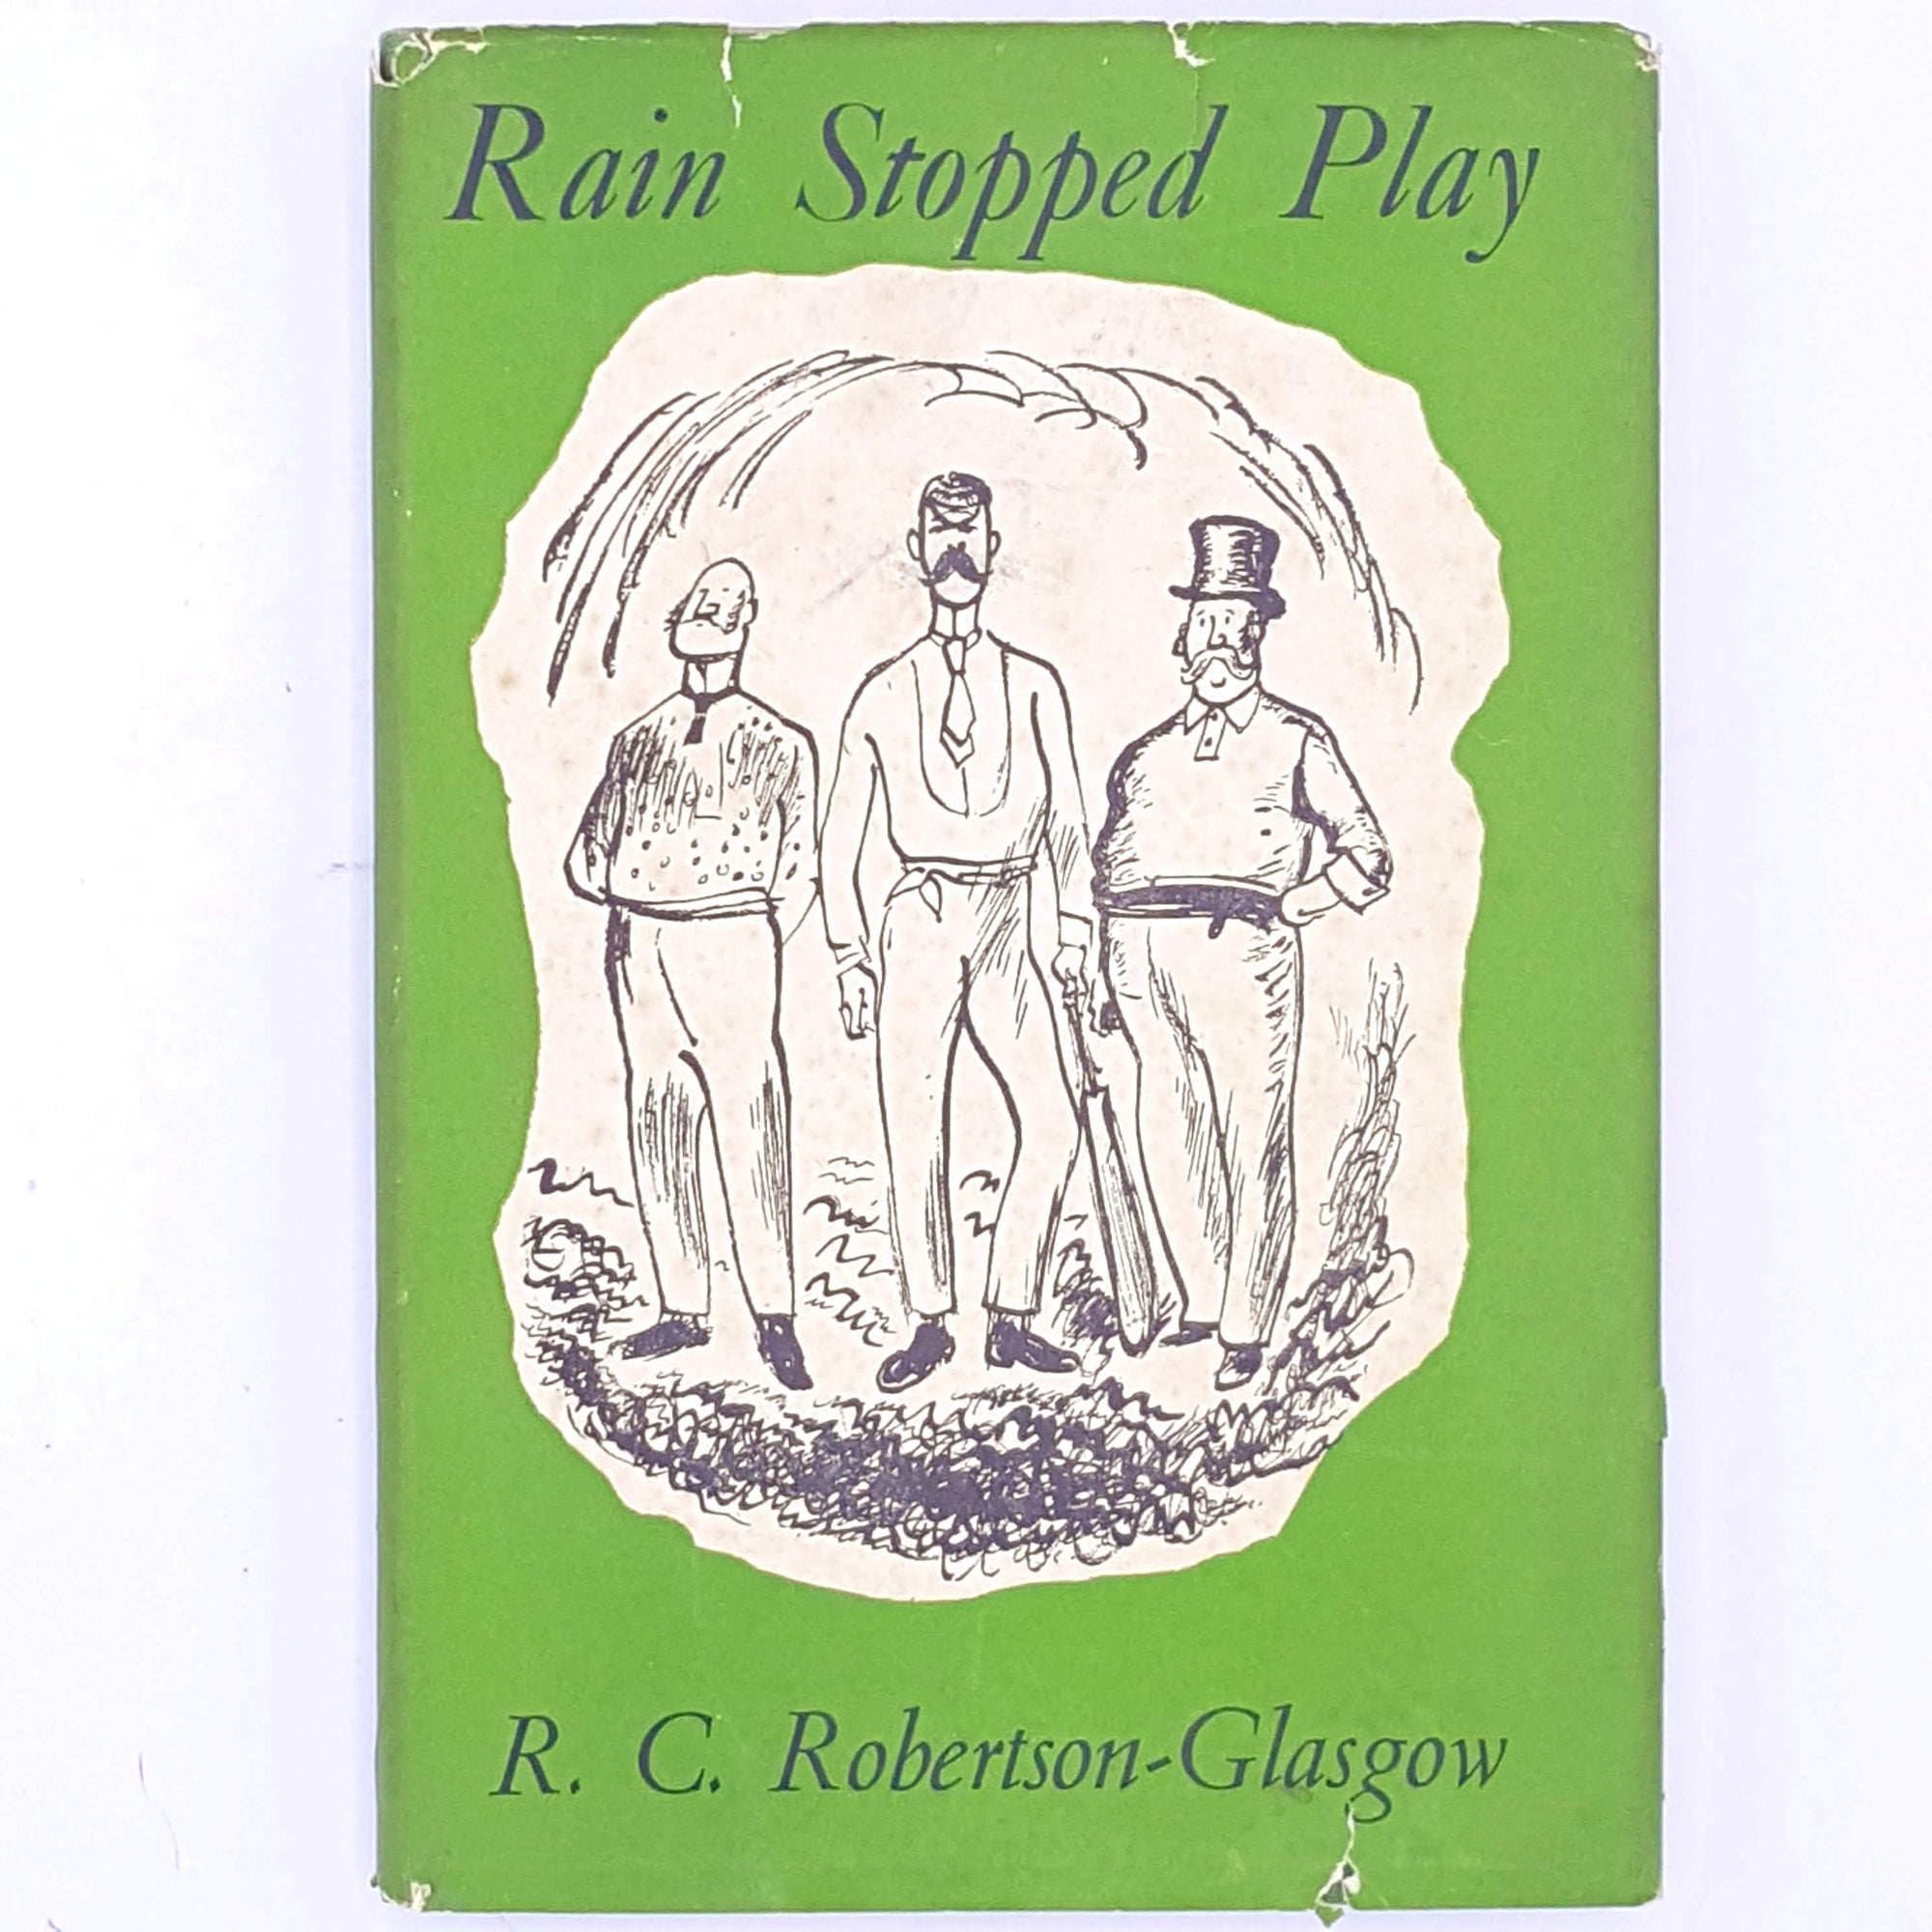 Rain Stopped Play, R.C. Robertson-Glasgow, 1948